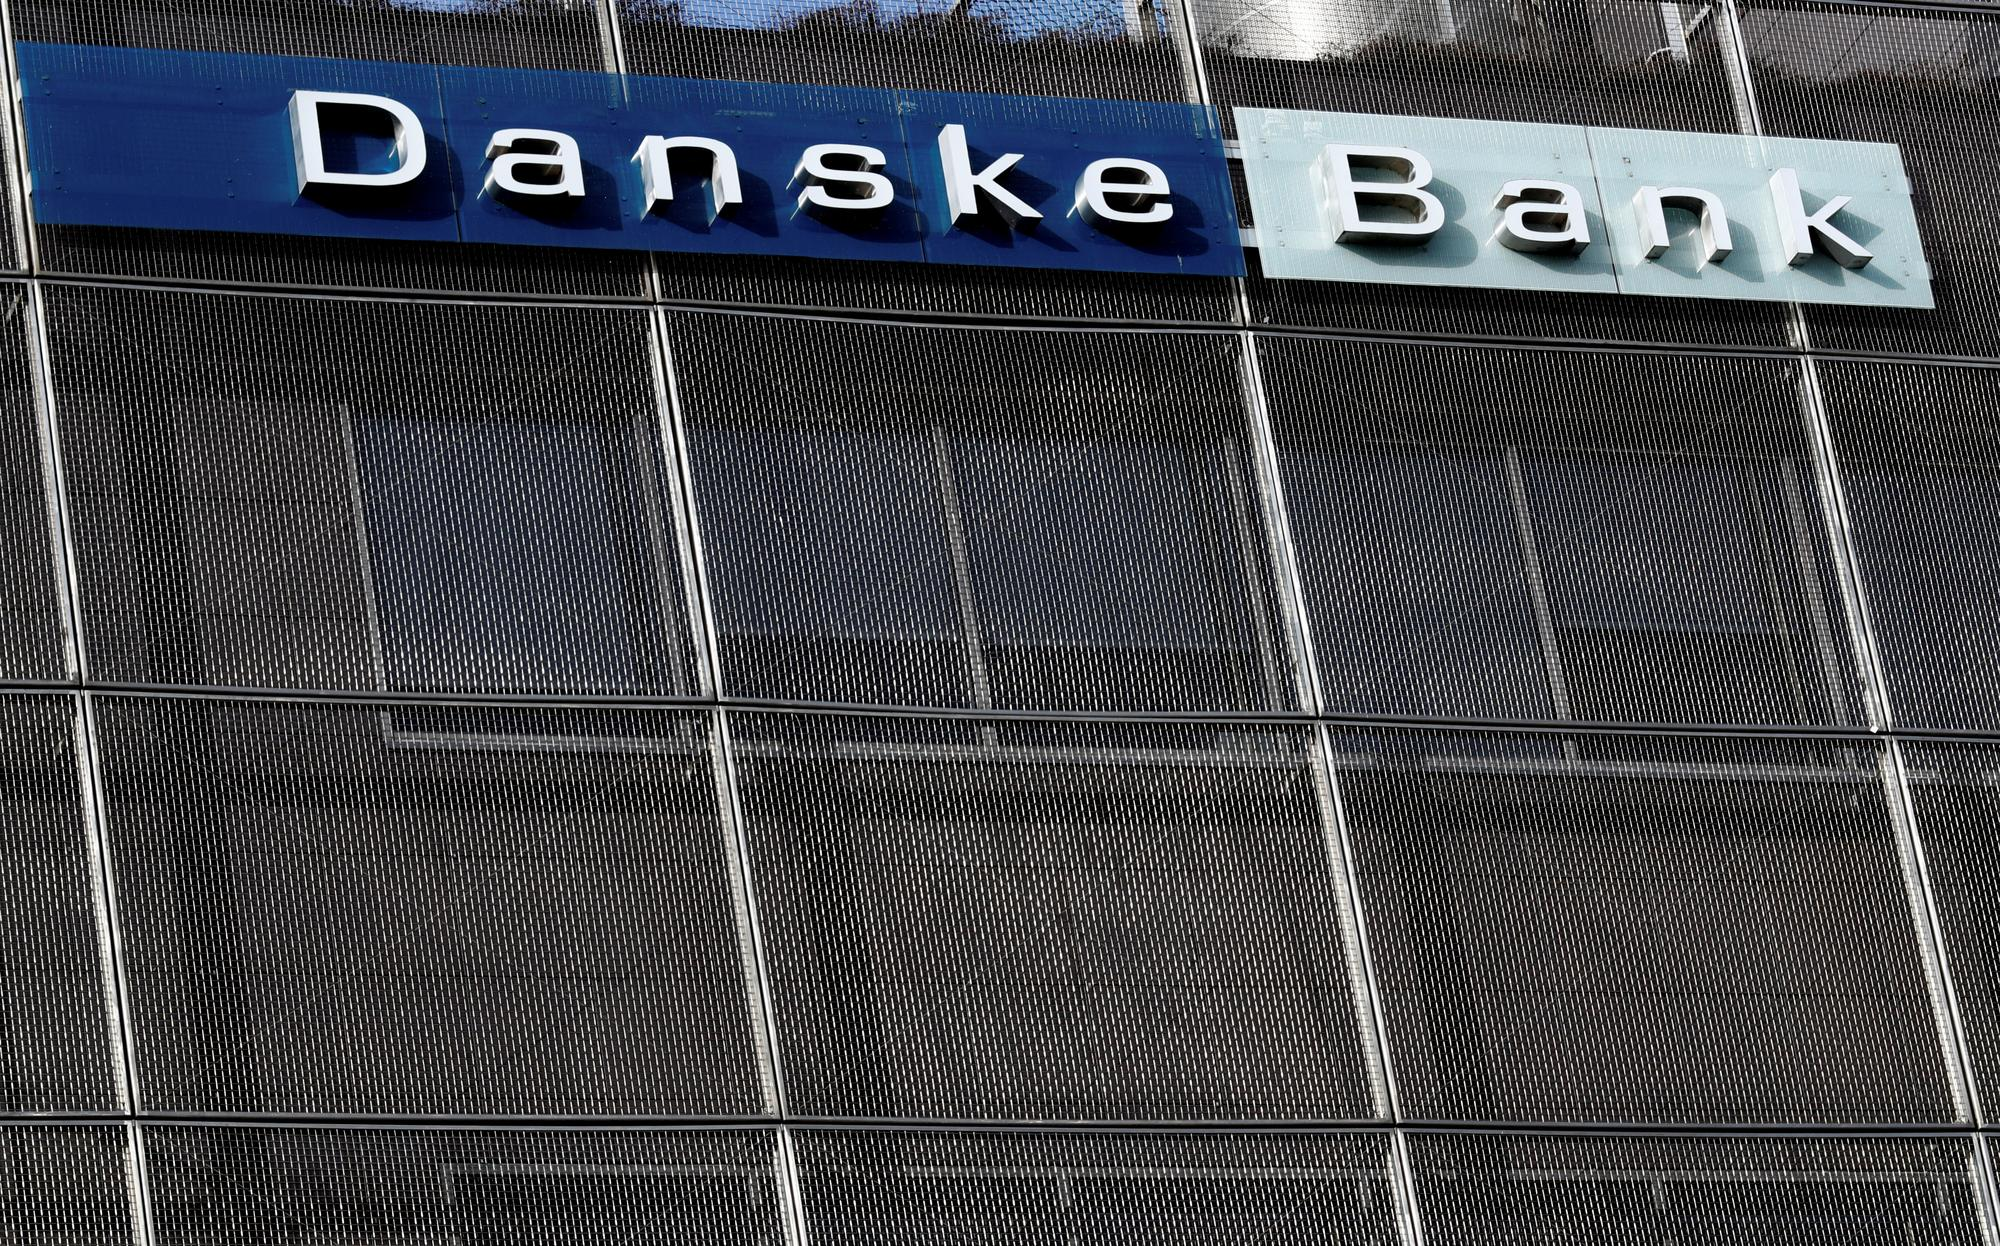 Nordic banks join forces to combat money laundering